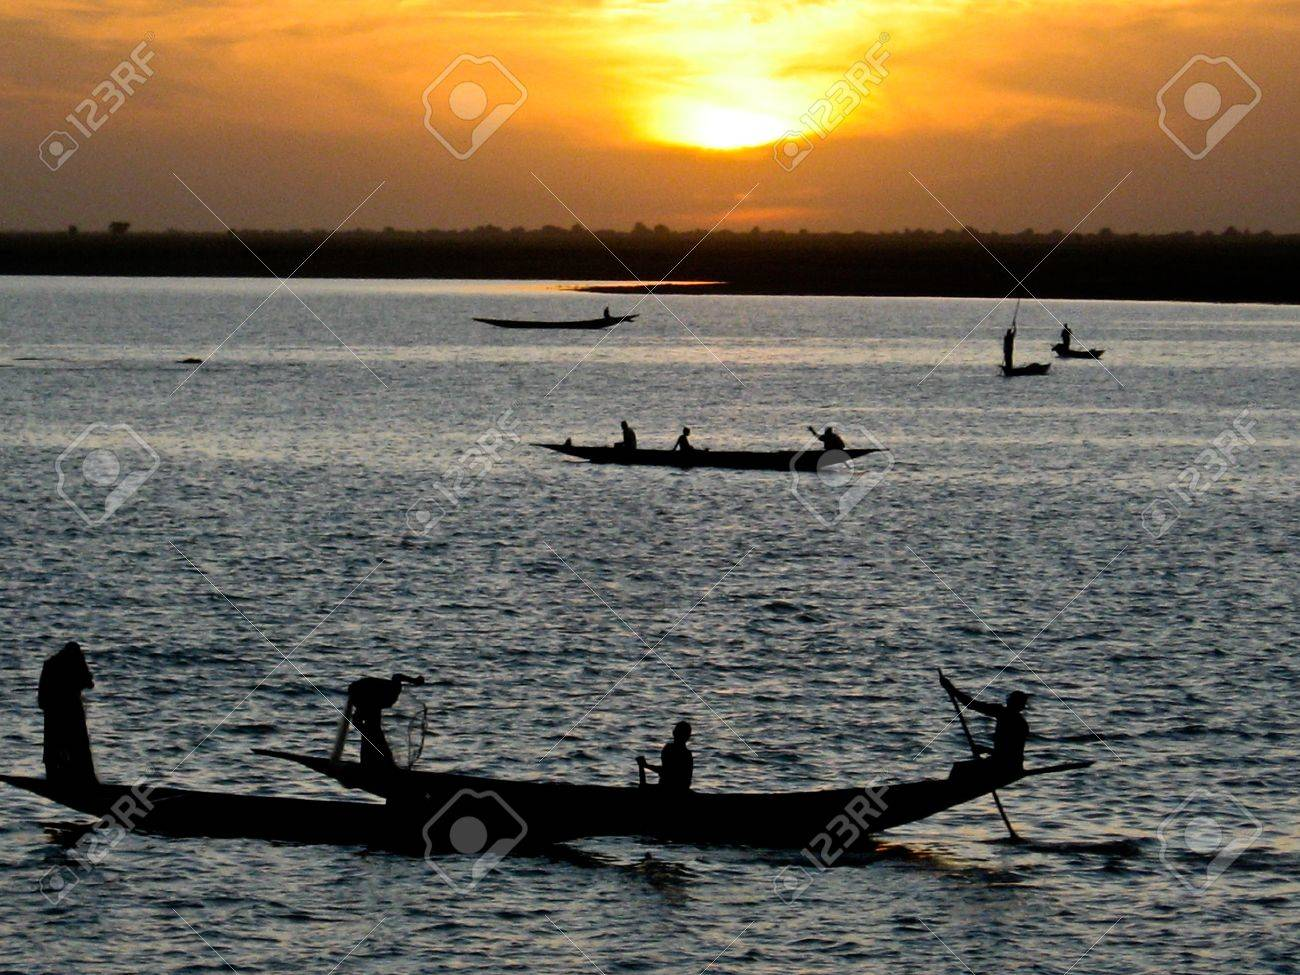 Fishermen in a pirogue in the river Niger at sunset.The Niger River is an important source of fish, providing food for riverside communities. Stock Photo - 10935938